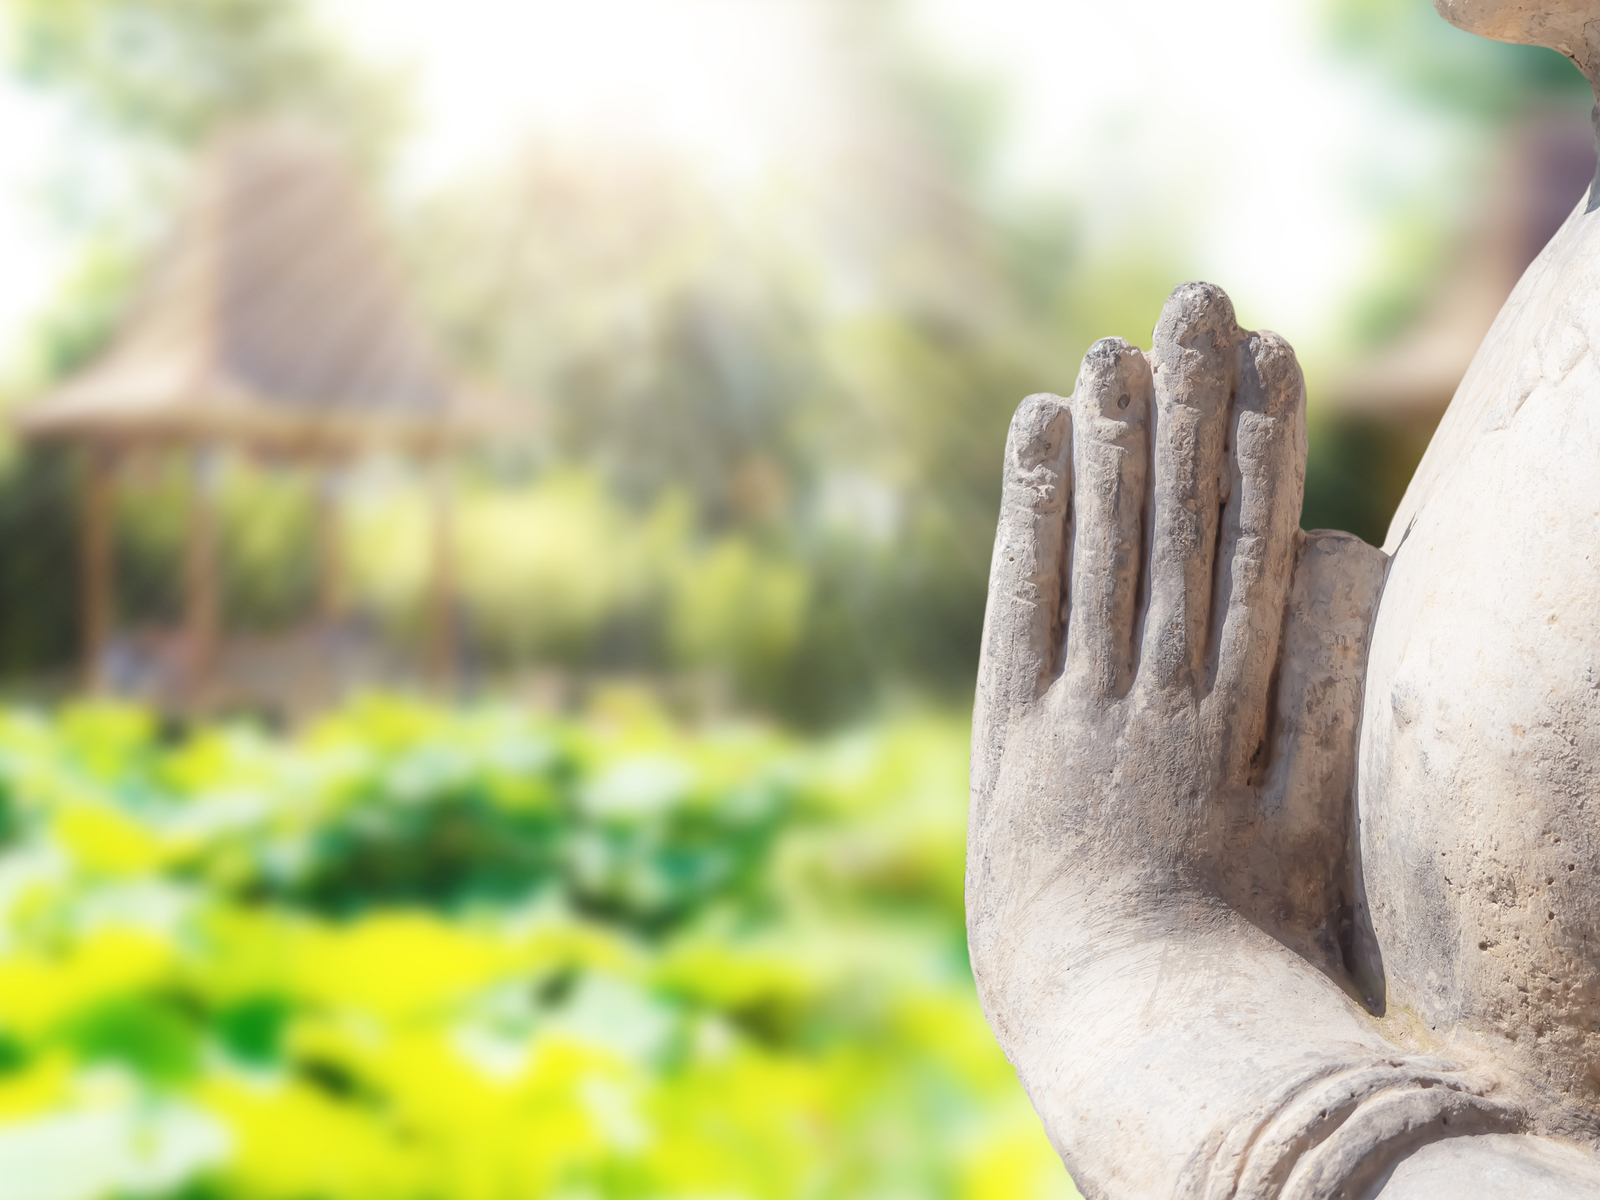 Hand gestures of prayer.The Power of Prayer & Meditation by Buddha on background of azian garden. Concept of meditation and prayer.